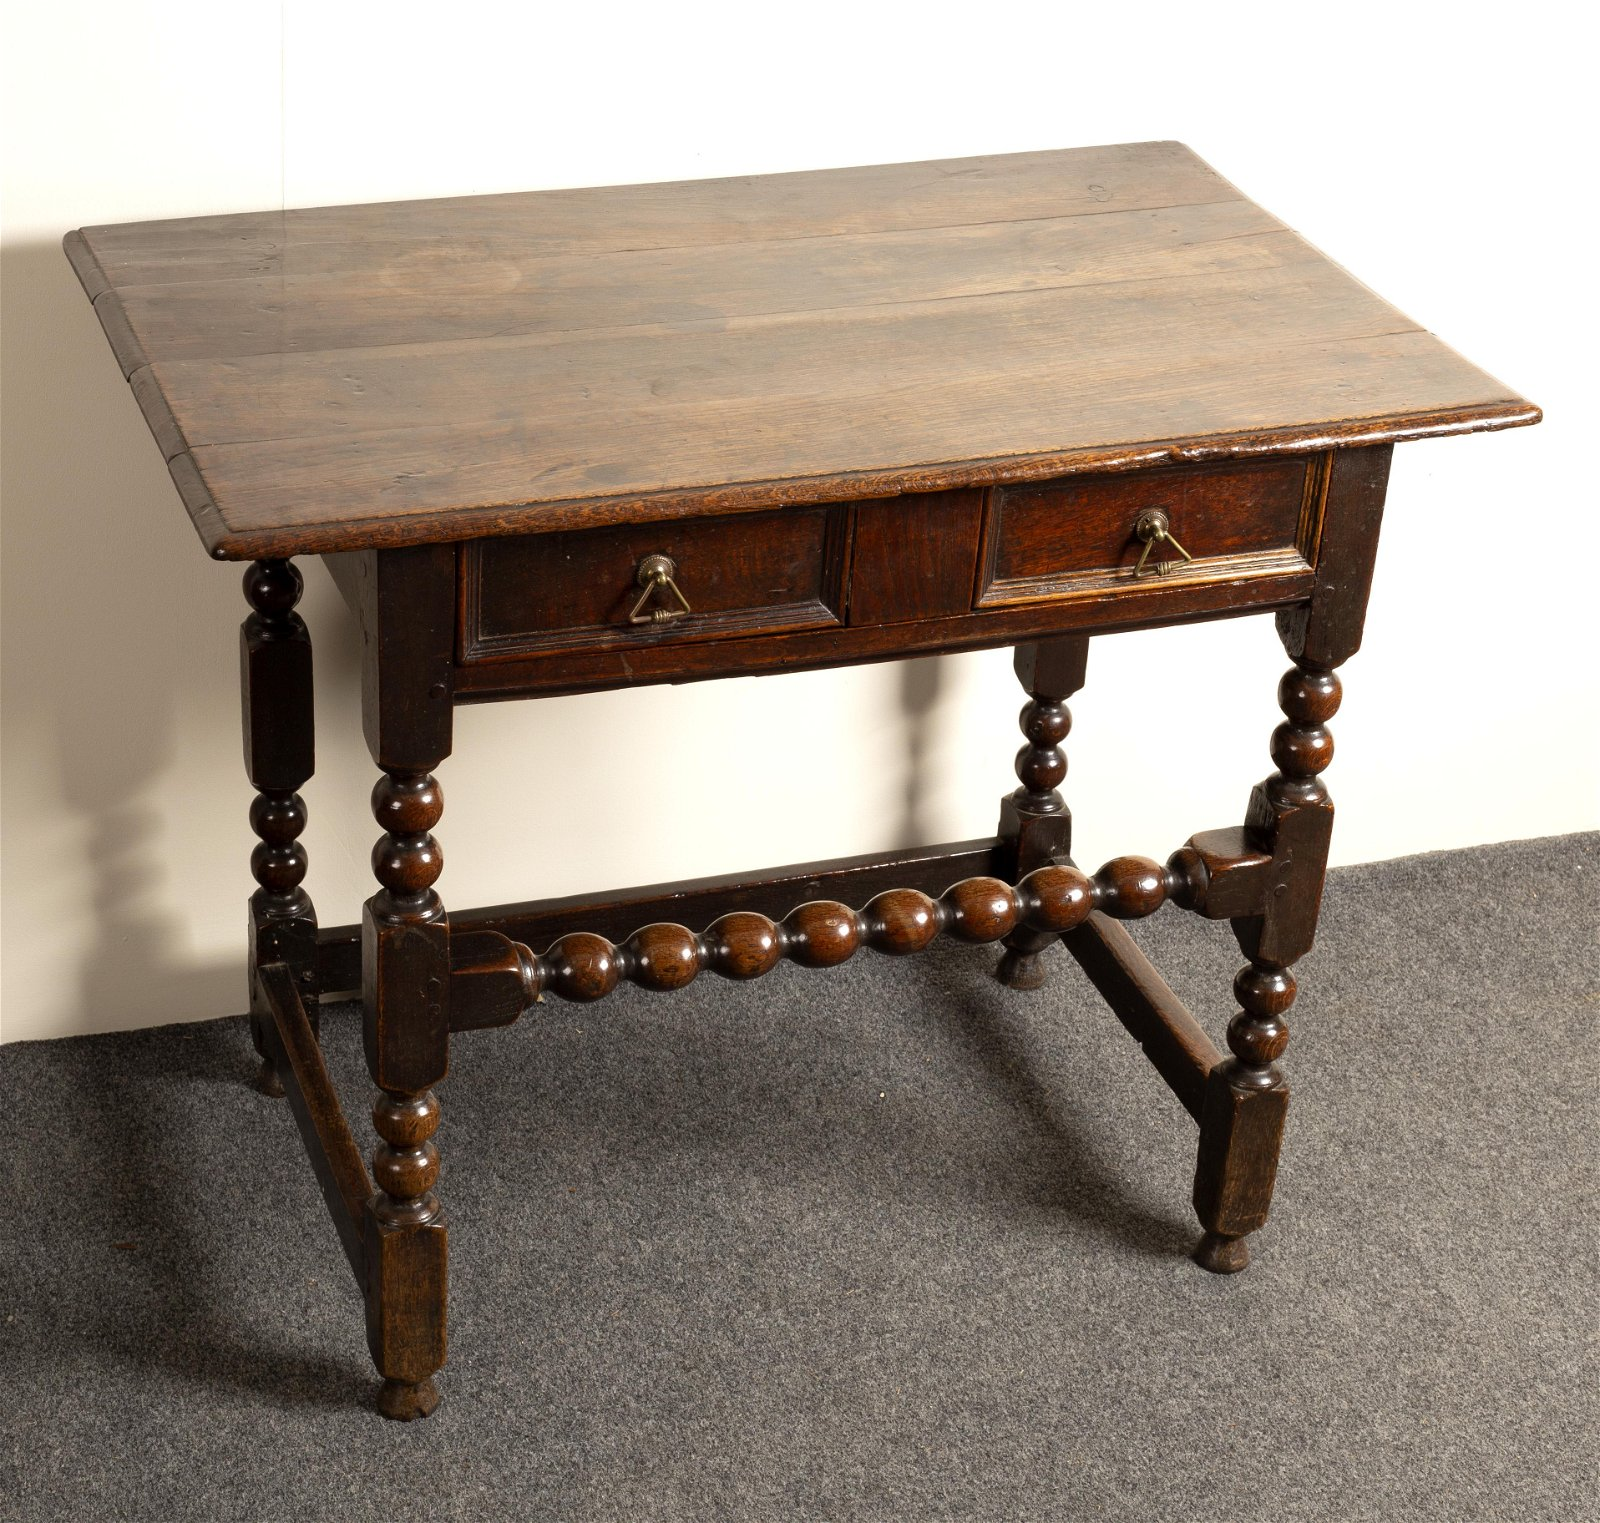 A William and Mary rectangular oak table, the top with